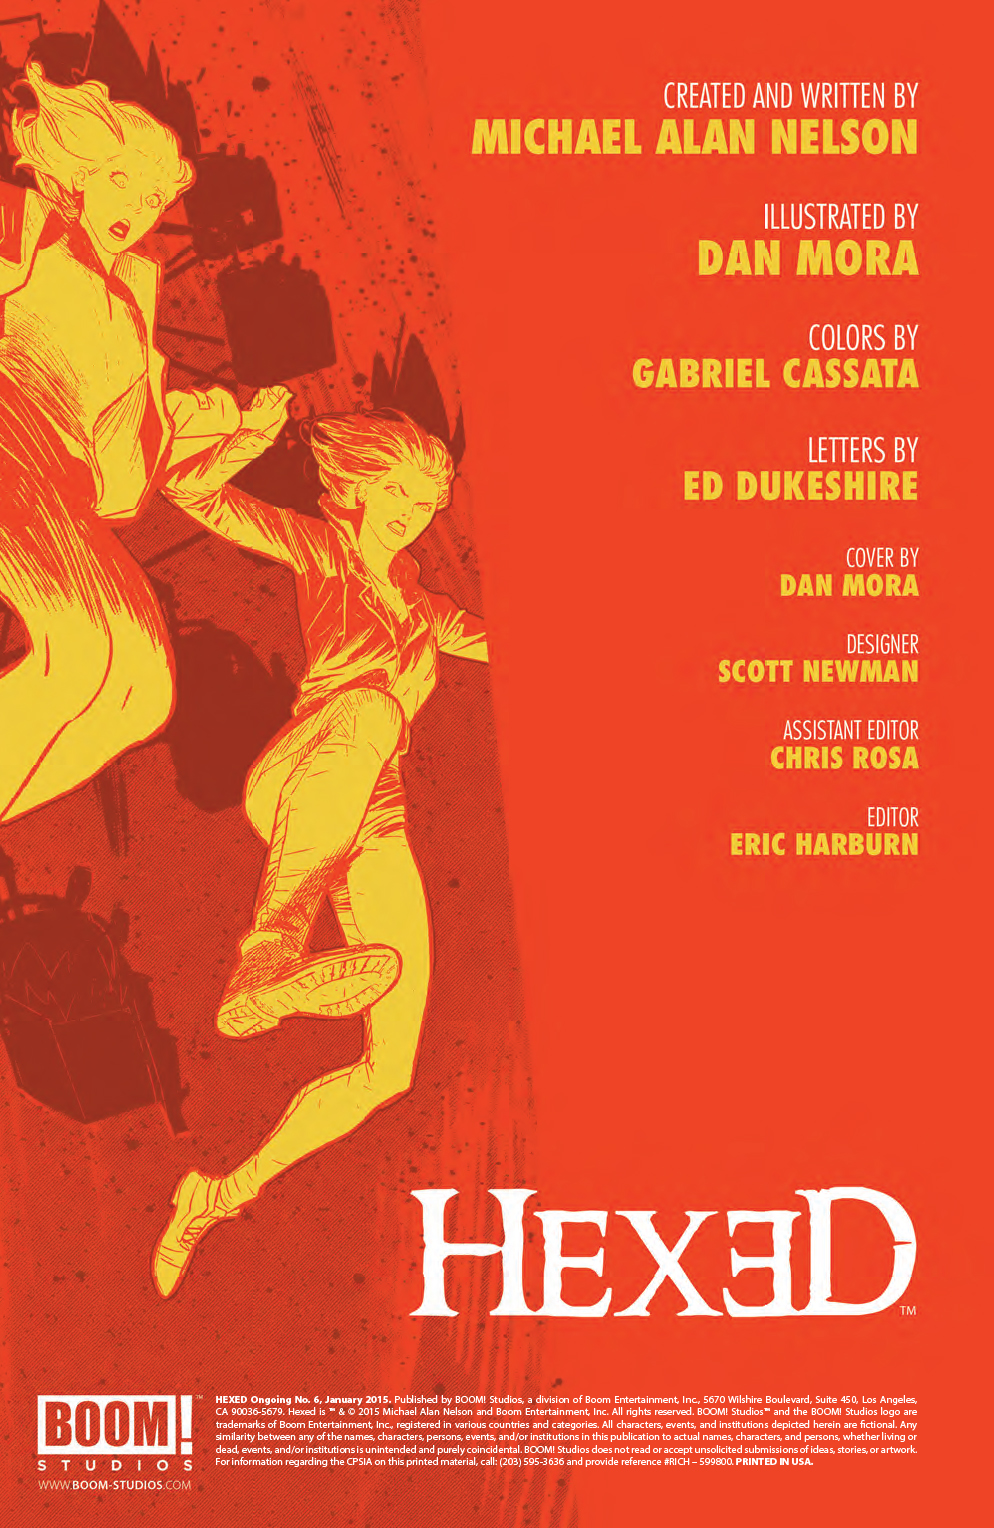 Hexed_006_PRESS-2.jpg